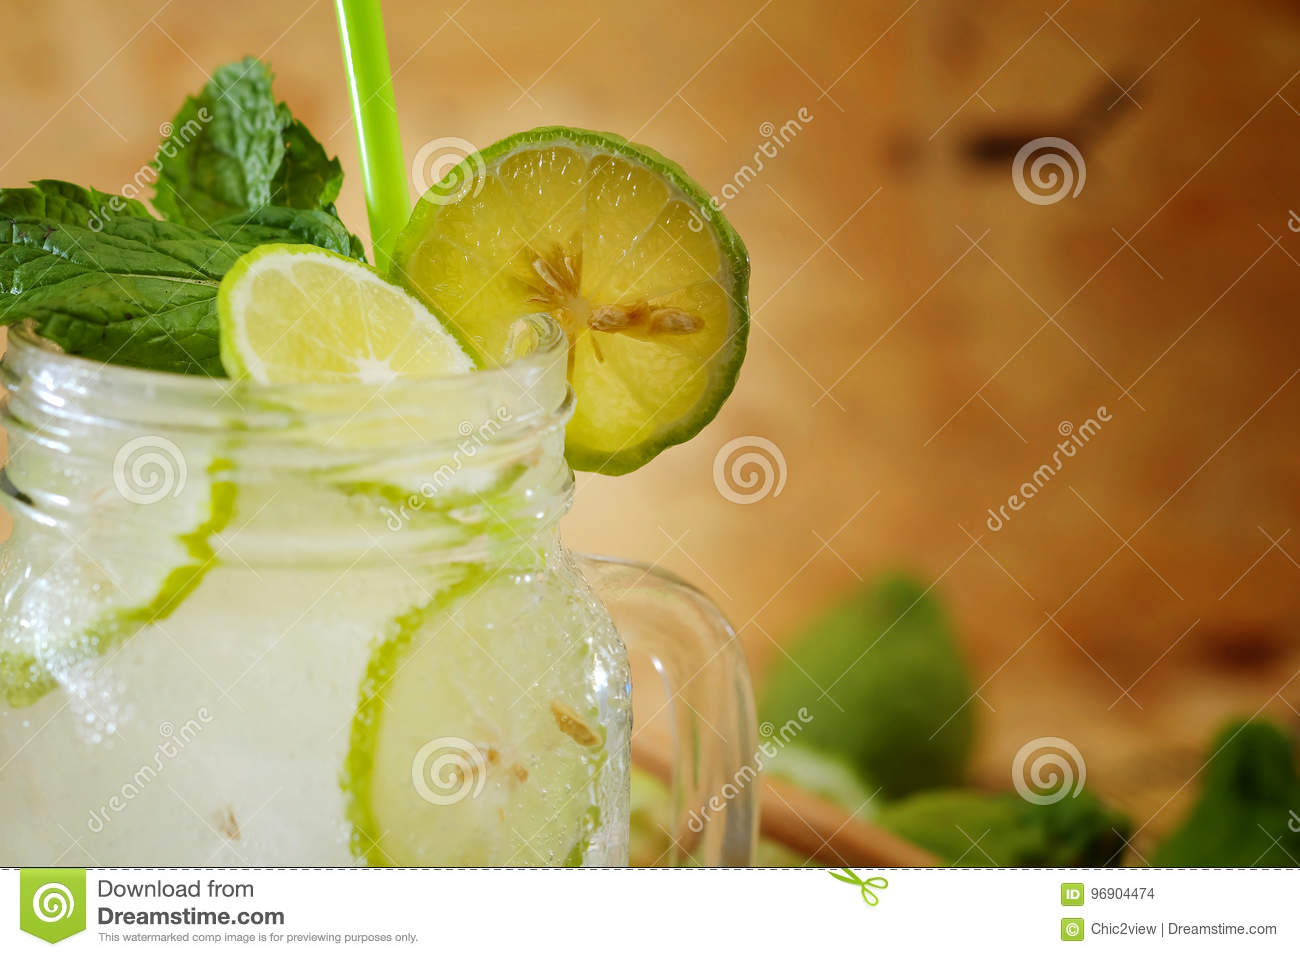 Kaffir lime So, Bergamot soda Cool drink, Thailand tradition Herb for Treatment of Acid Reflux, with Oriental Earth tone map backg